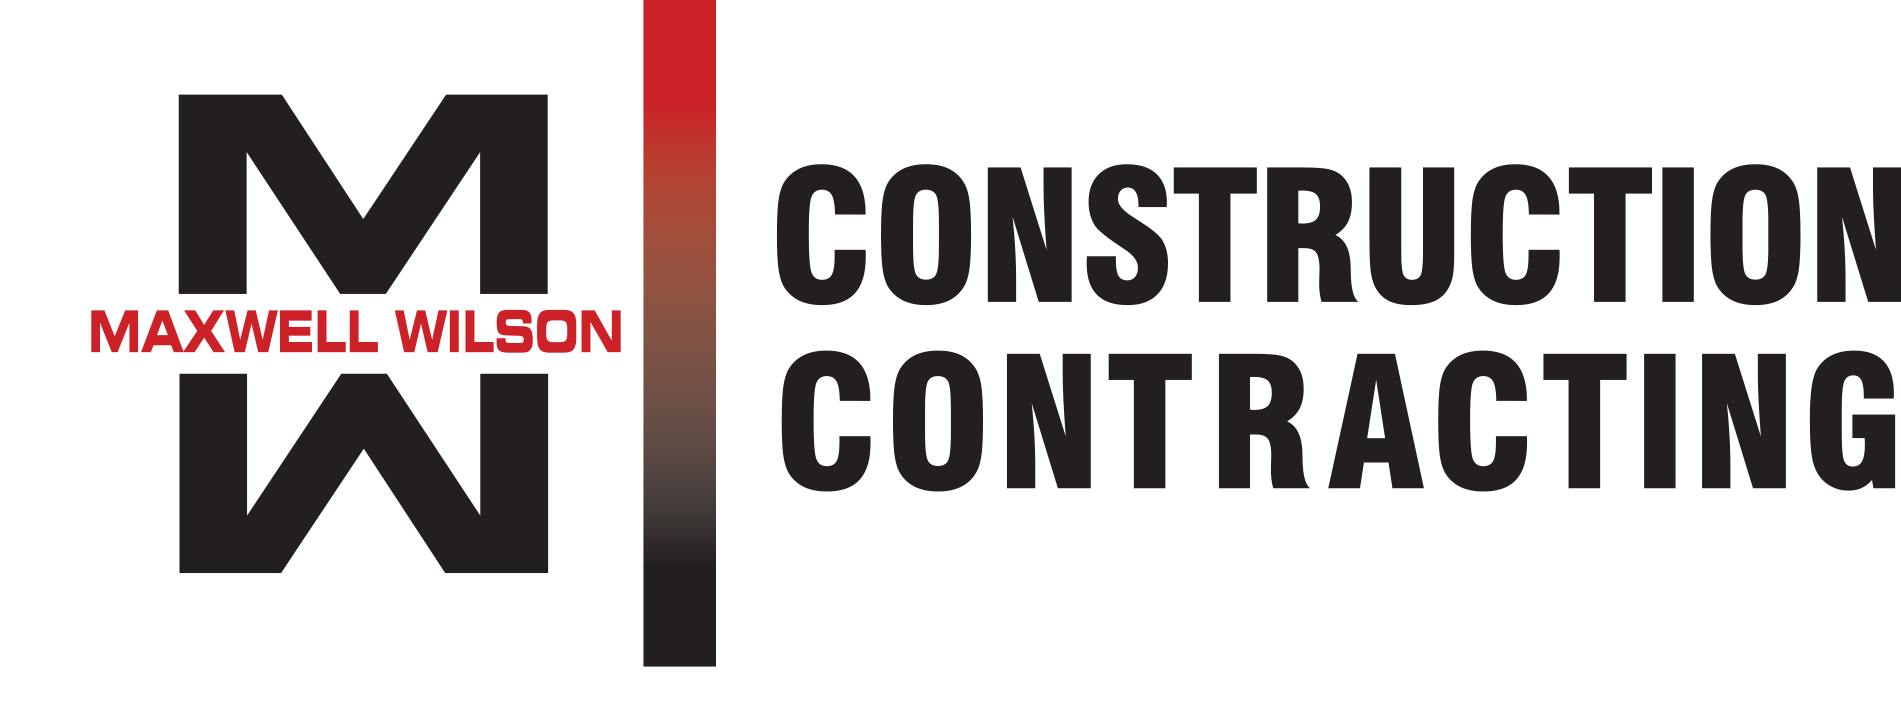 Maxwell Wilson Construction Contracting